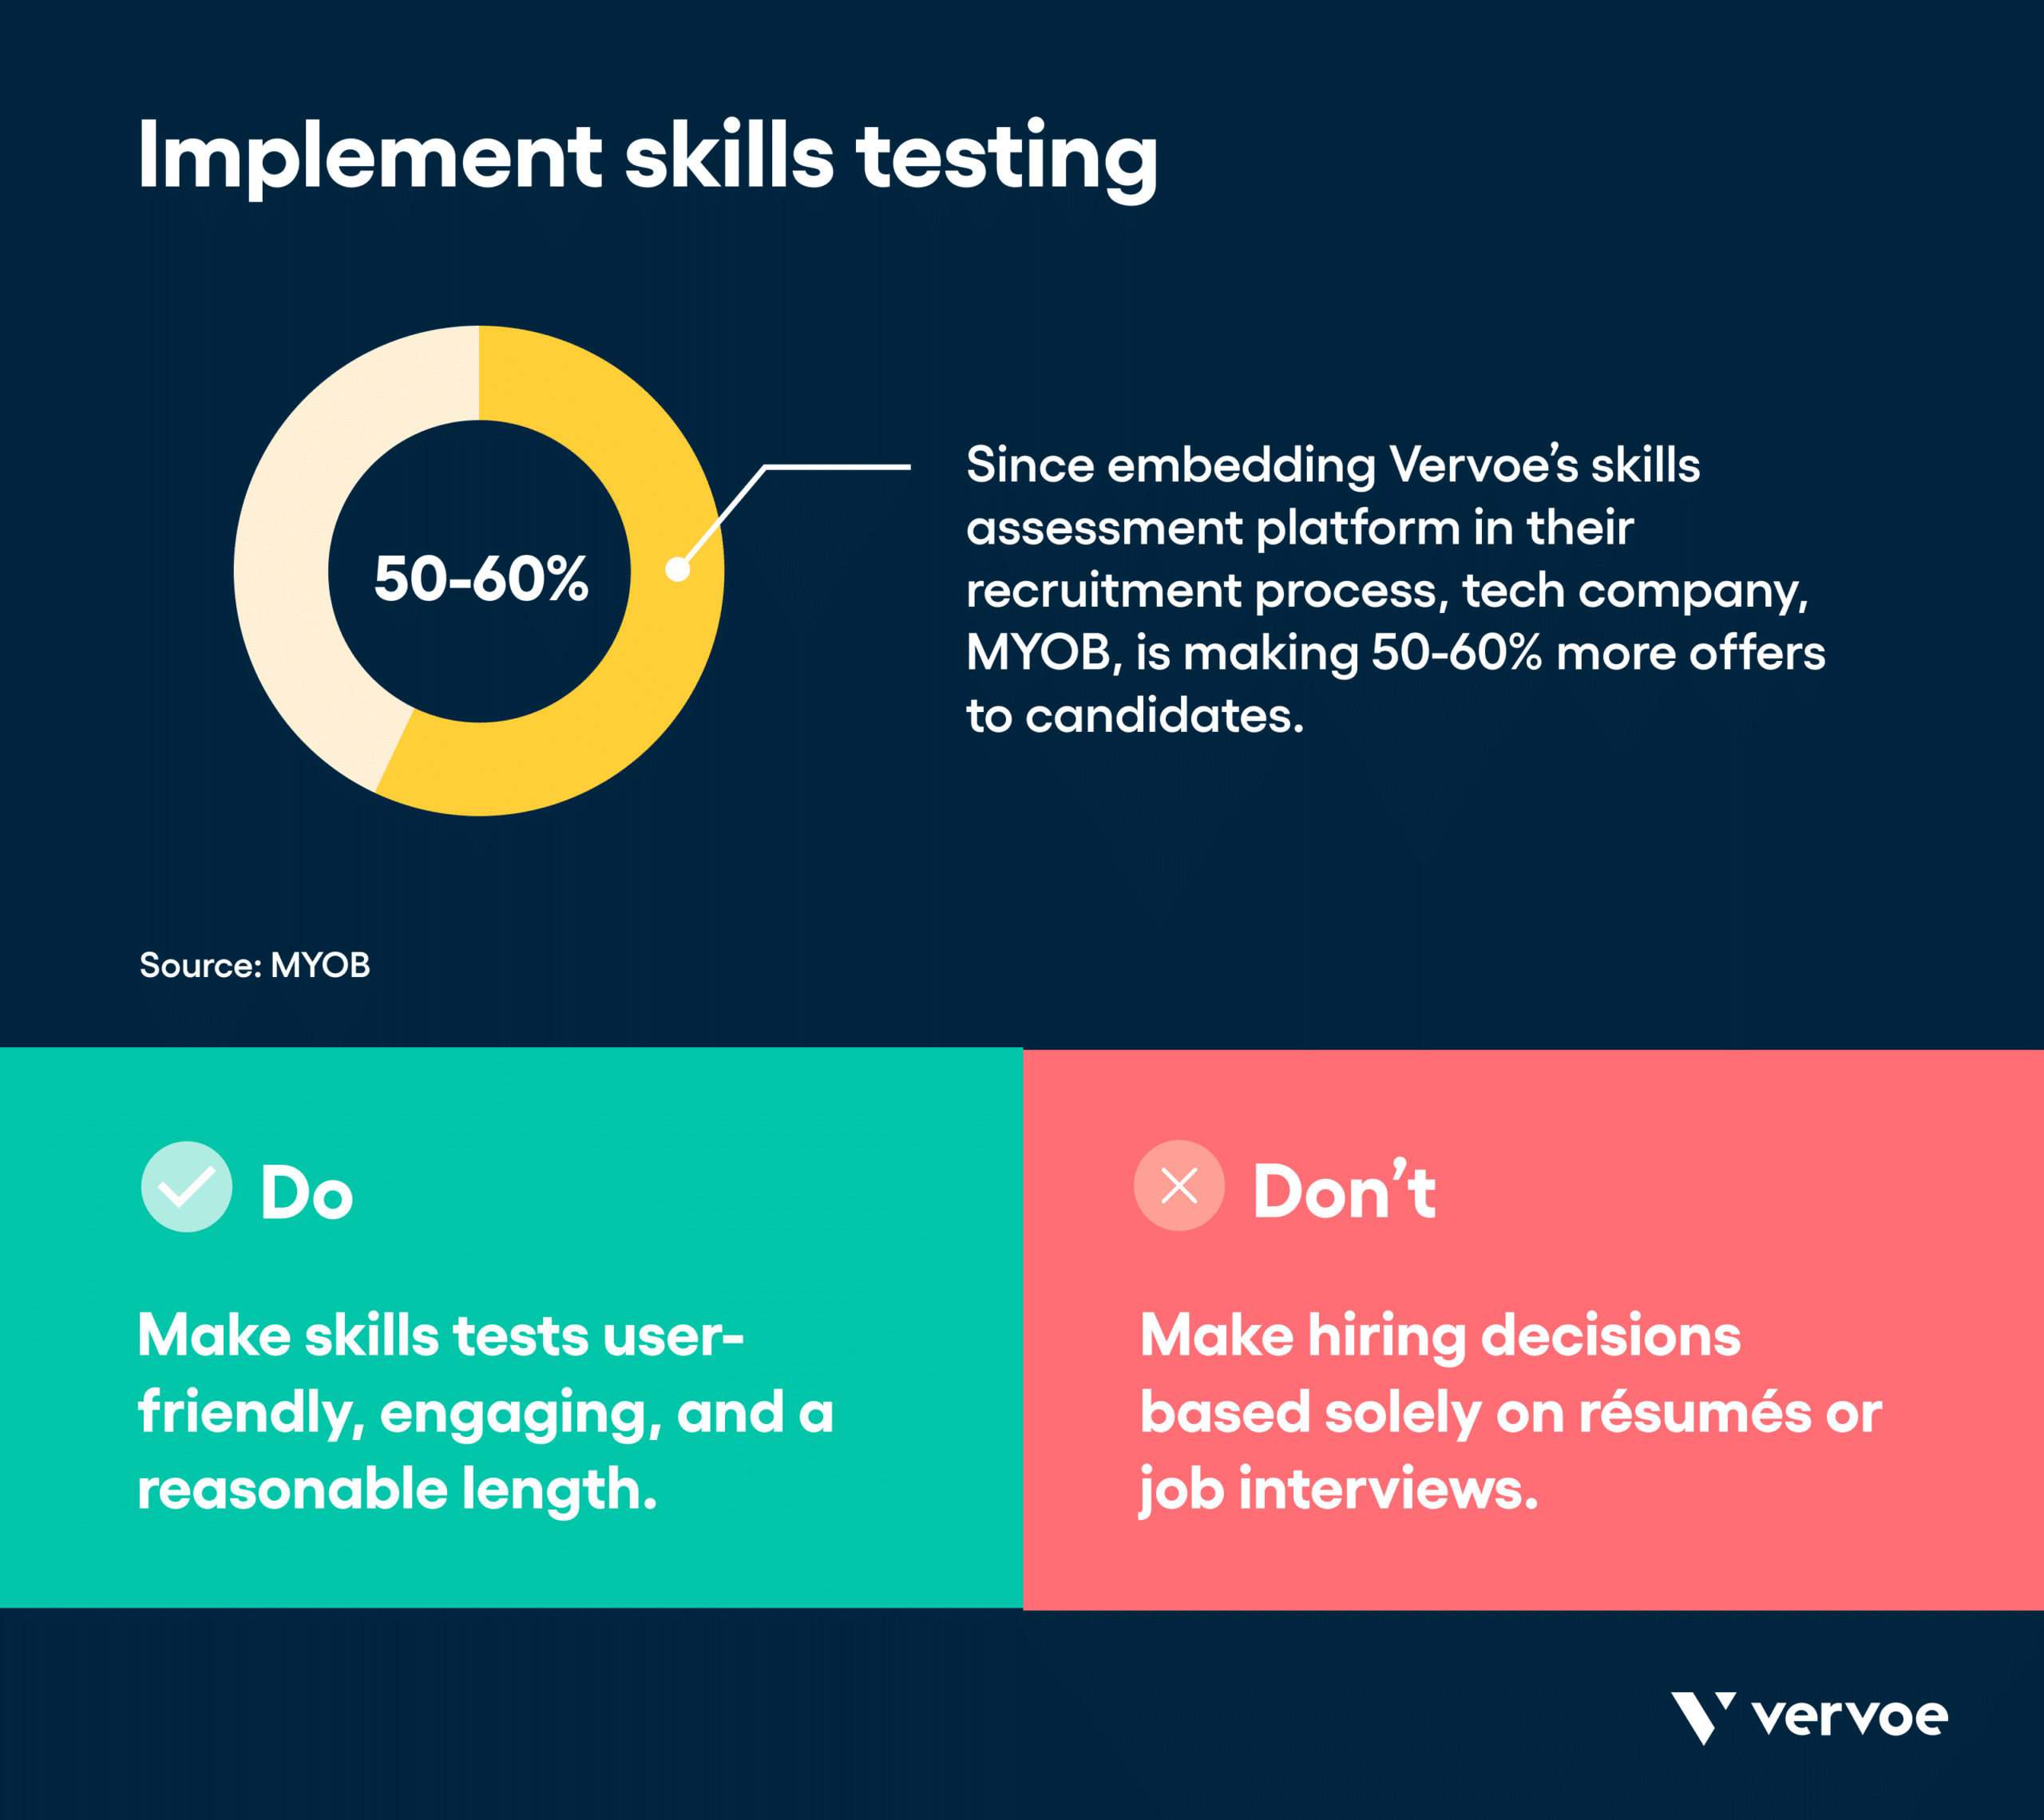 Infographic showing skills testing can result in more offers to candidates